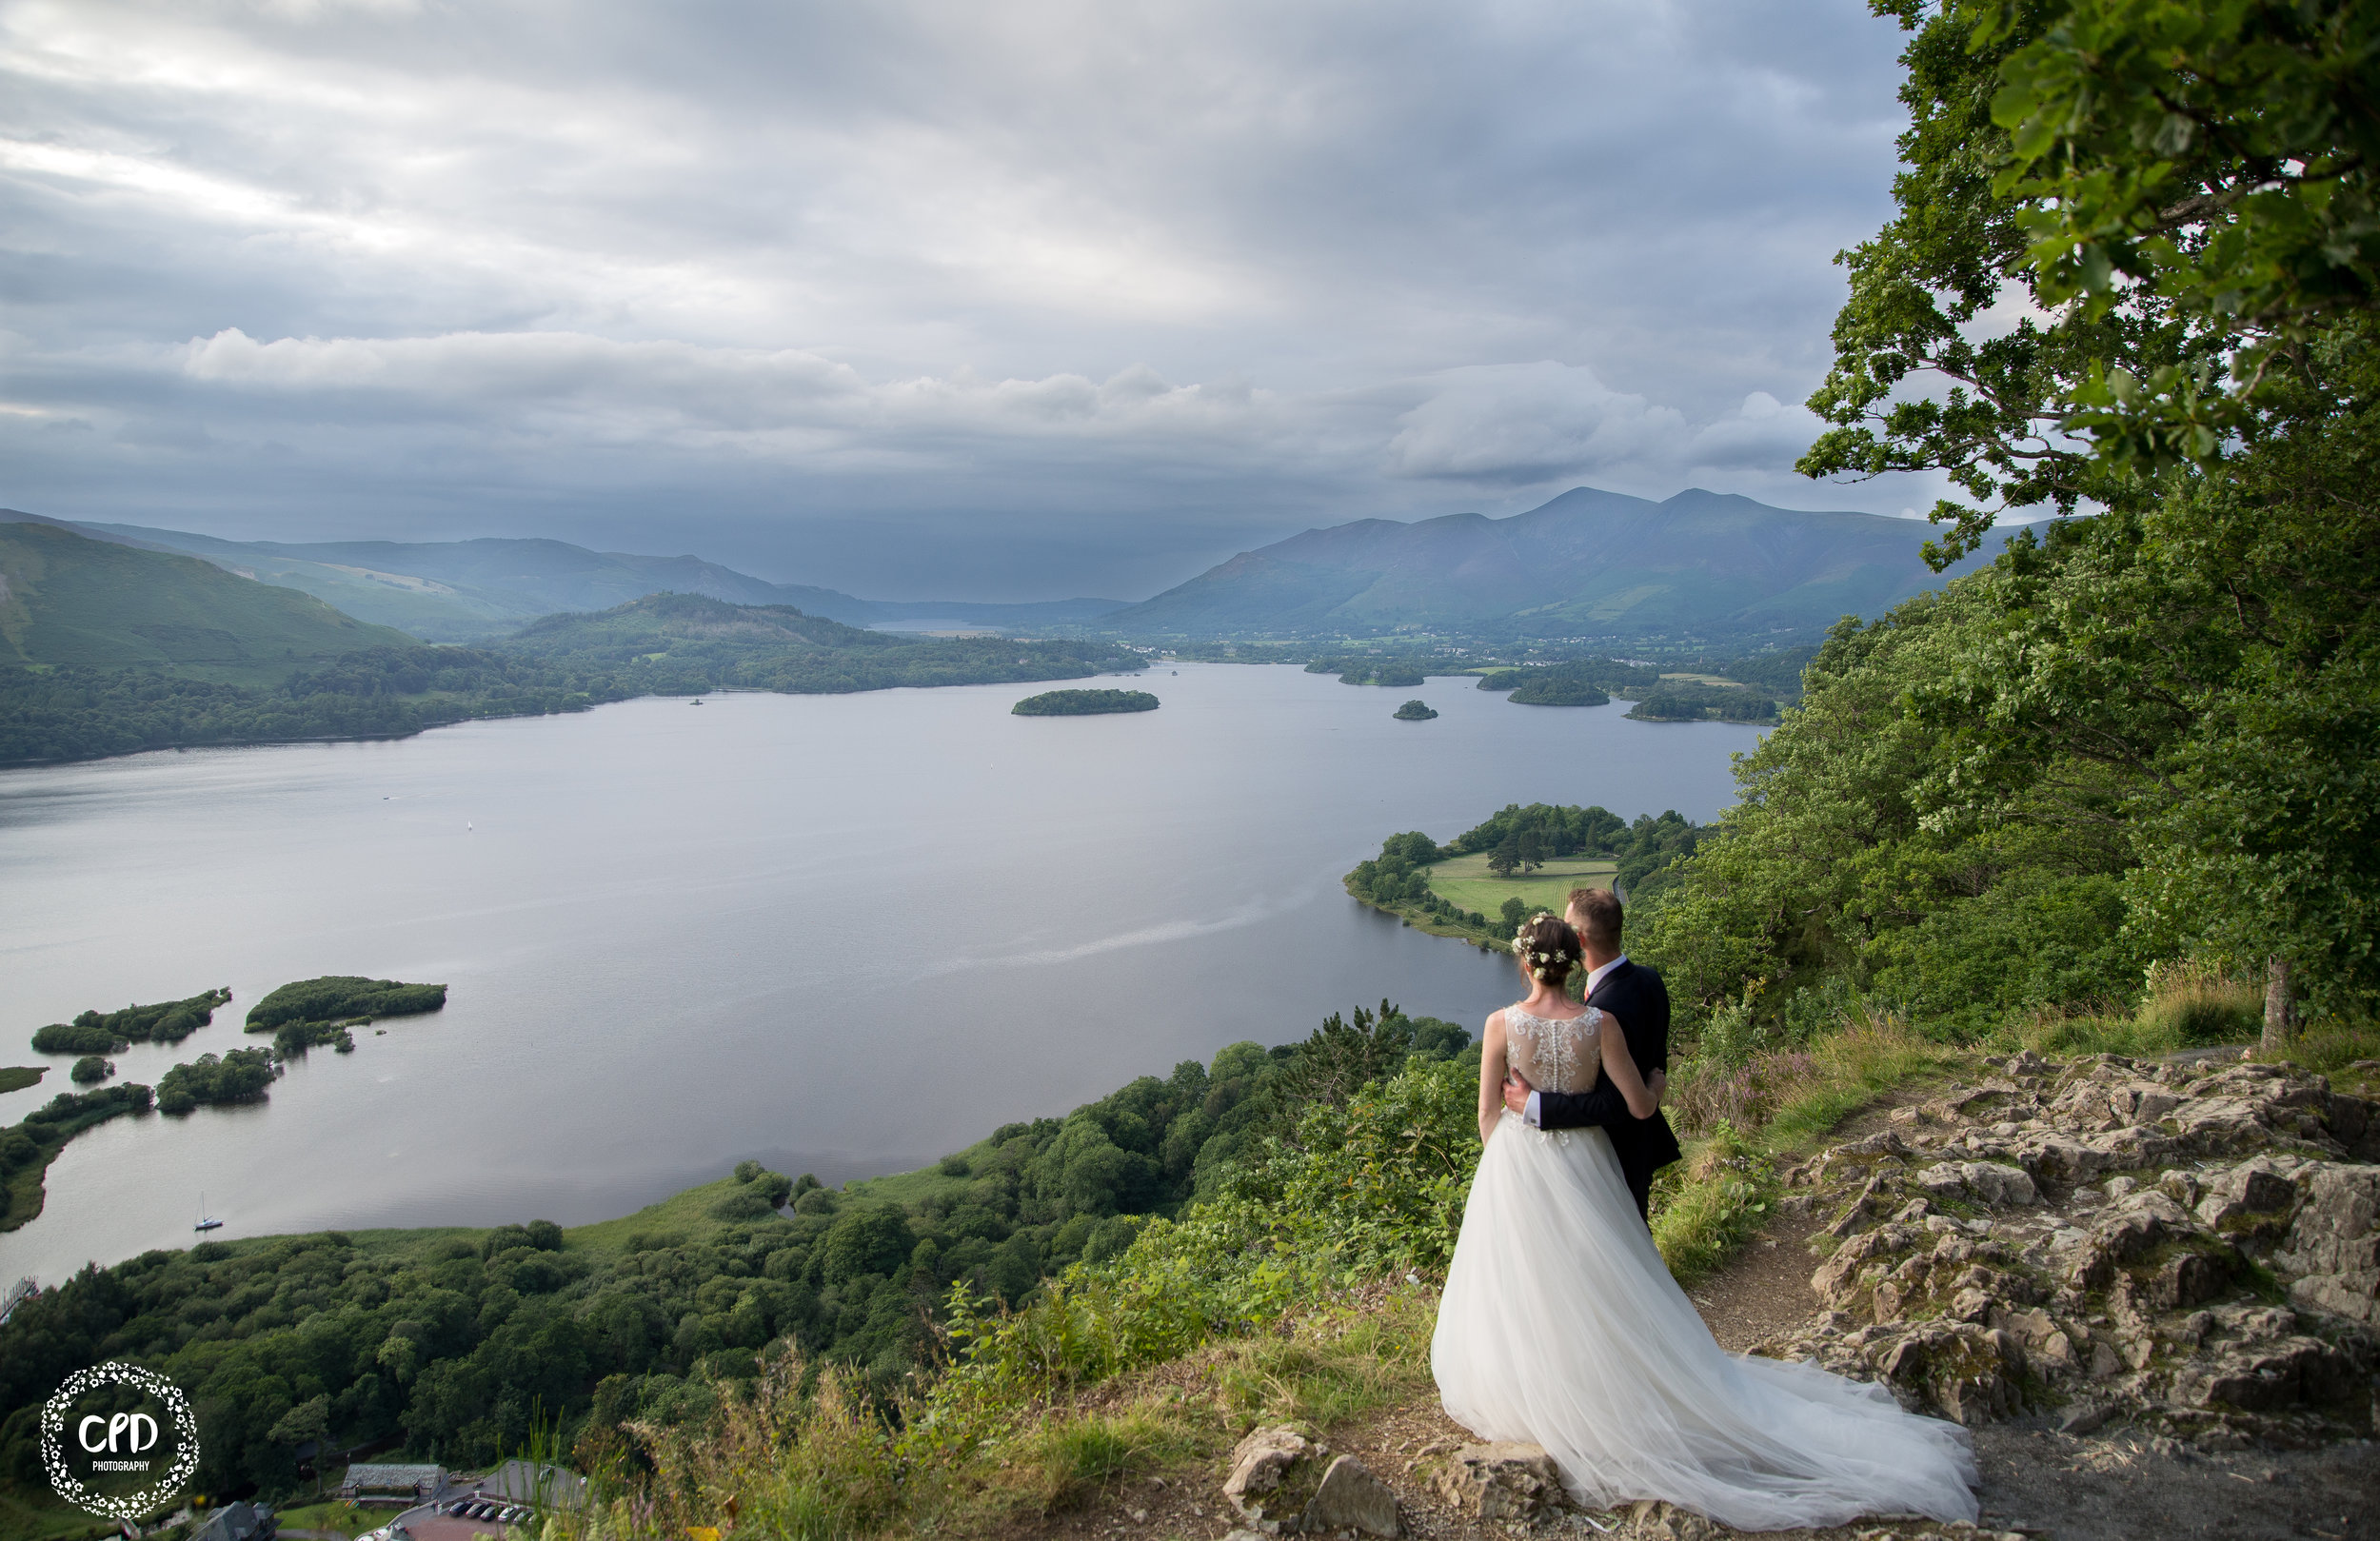 The bride and groom overlooking Derwent Water